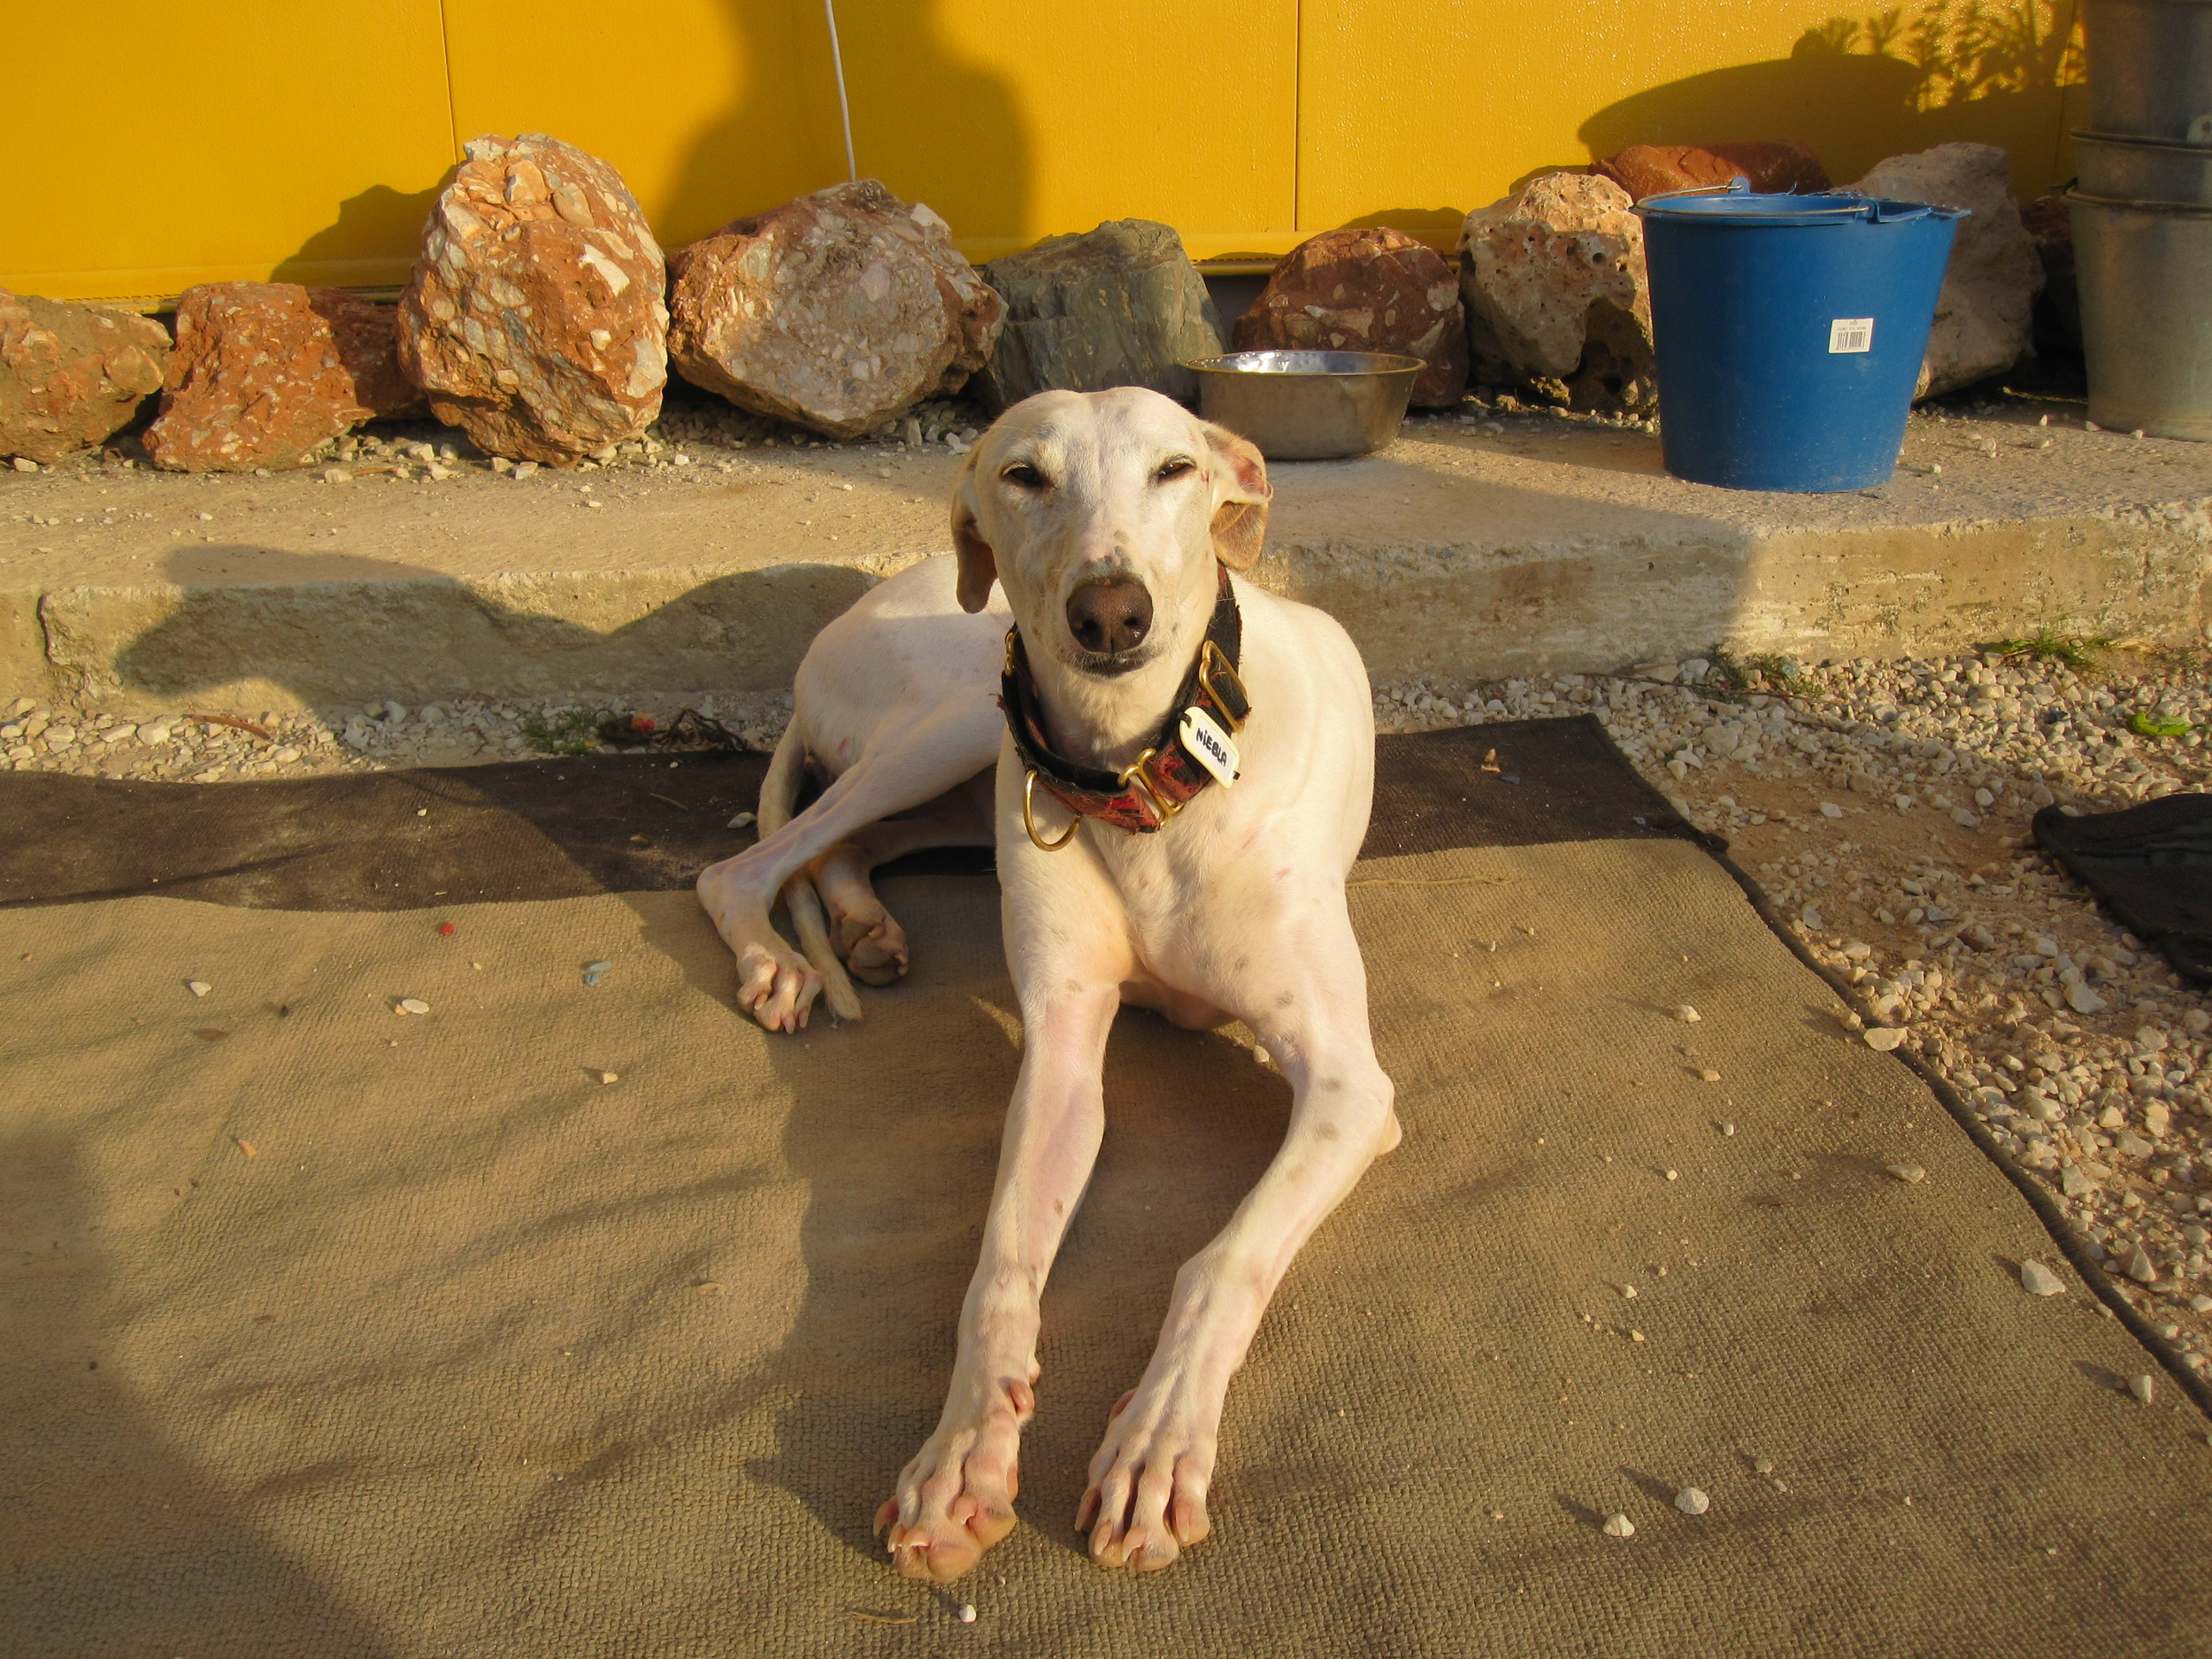 Niebla waiting for her forever home at GEF! Could that be you??